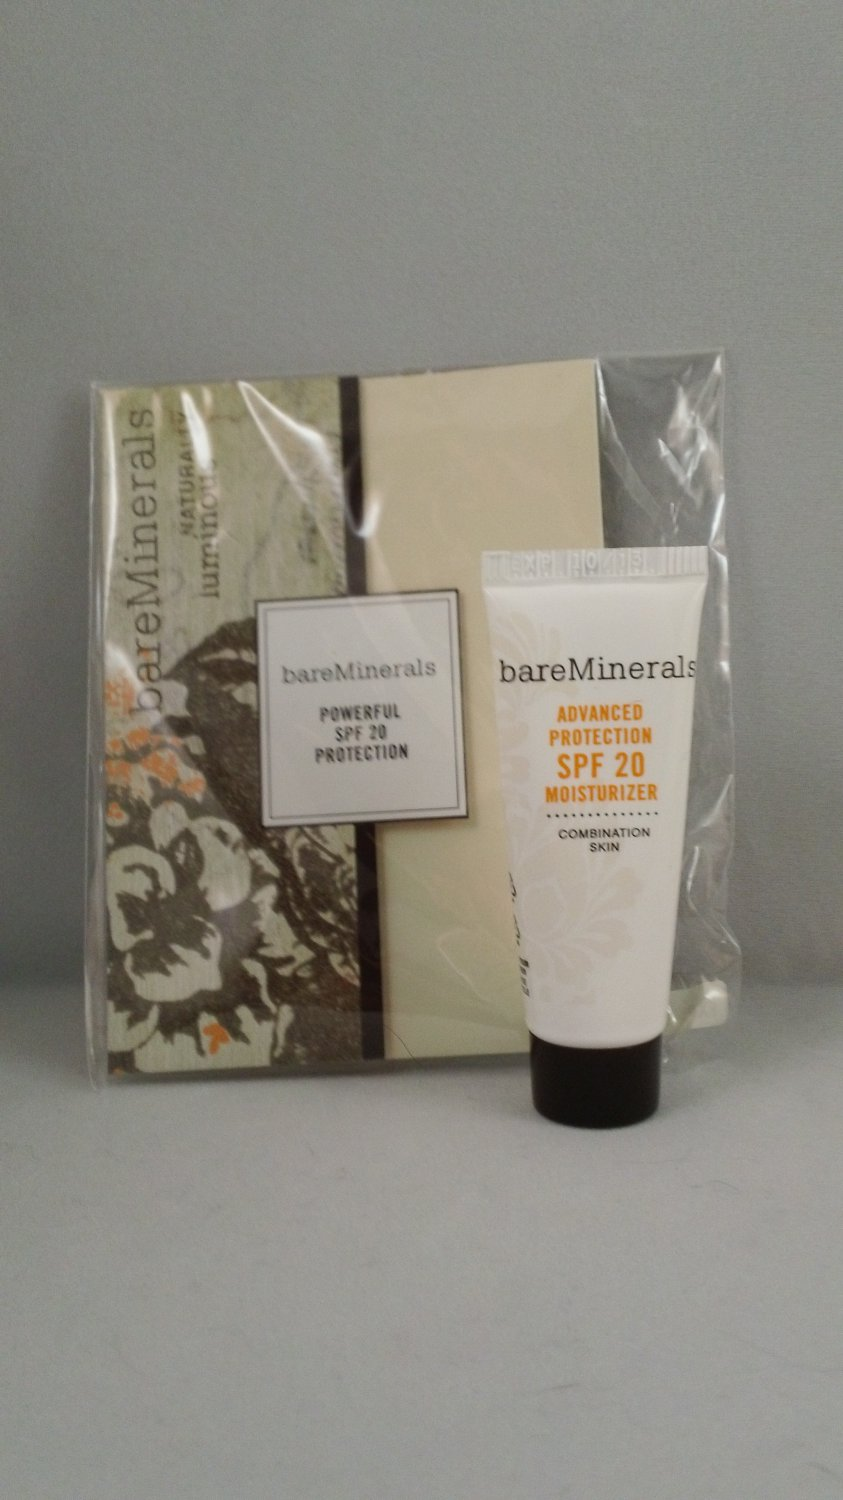 Bare Escentuals bareMinerals Advanced Protection SPF 20 Moisturizer Combination Skin trial size